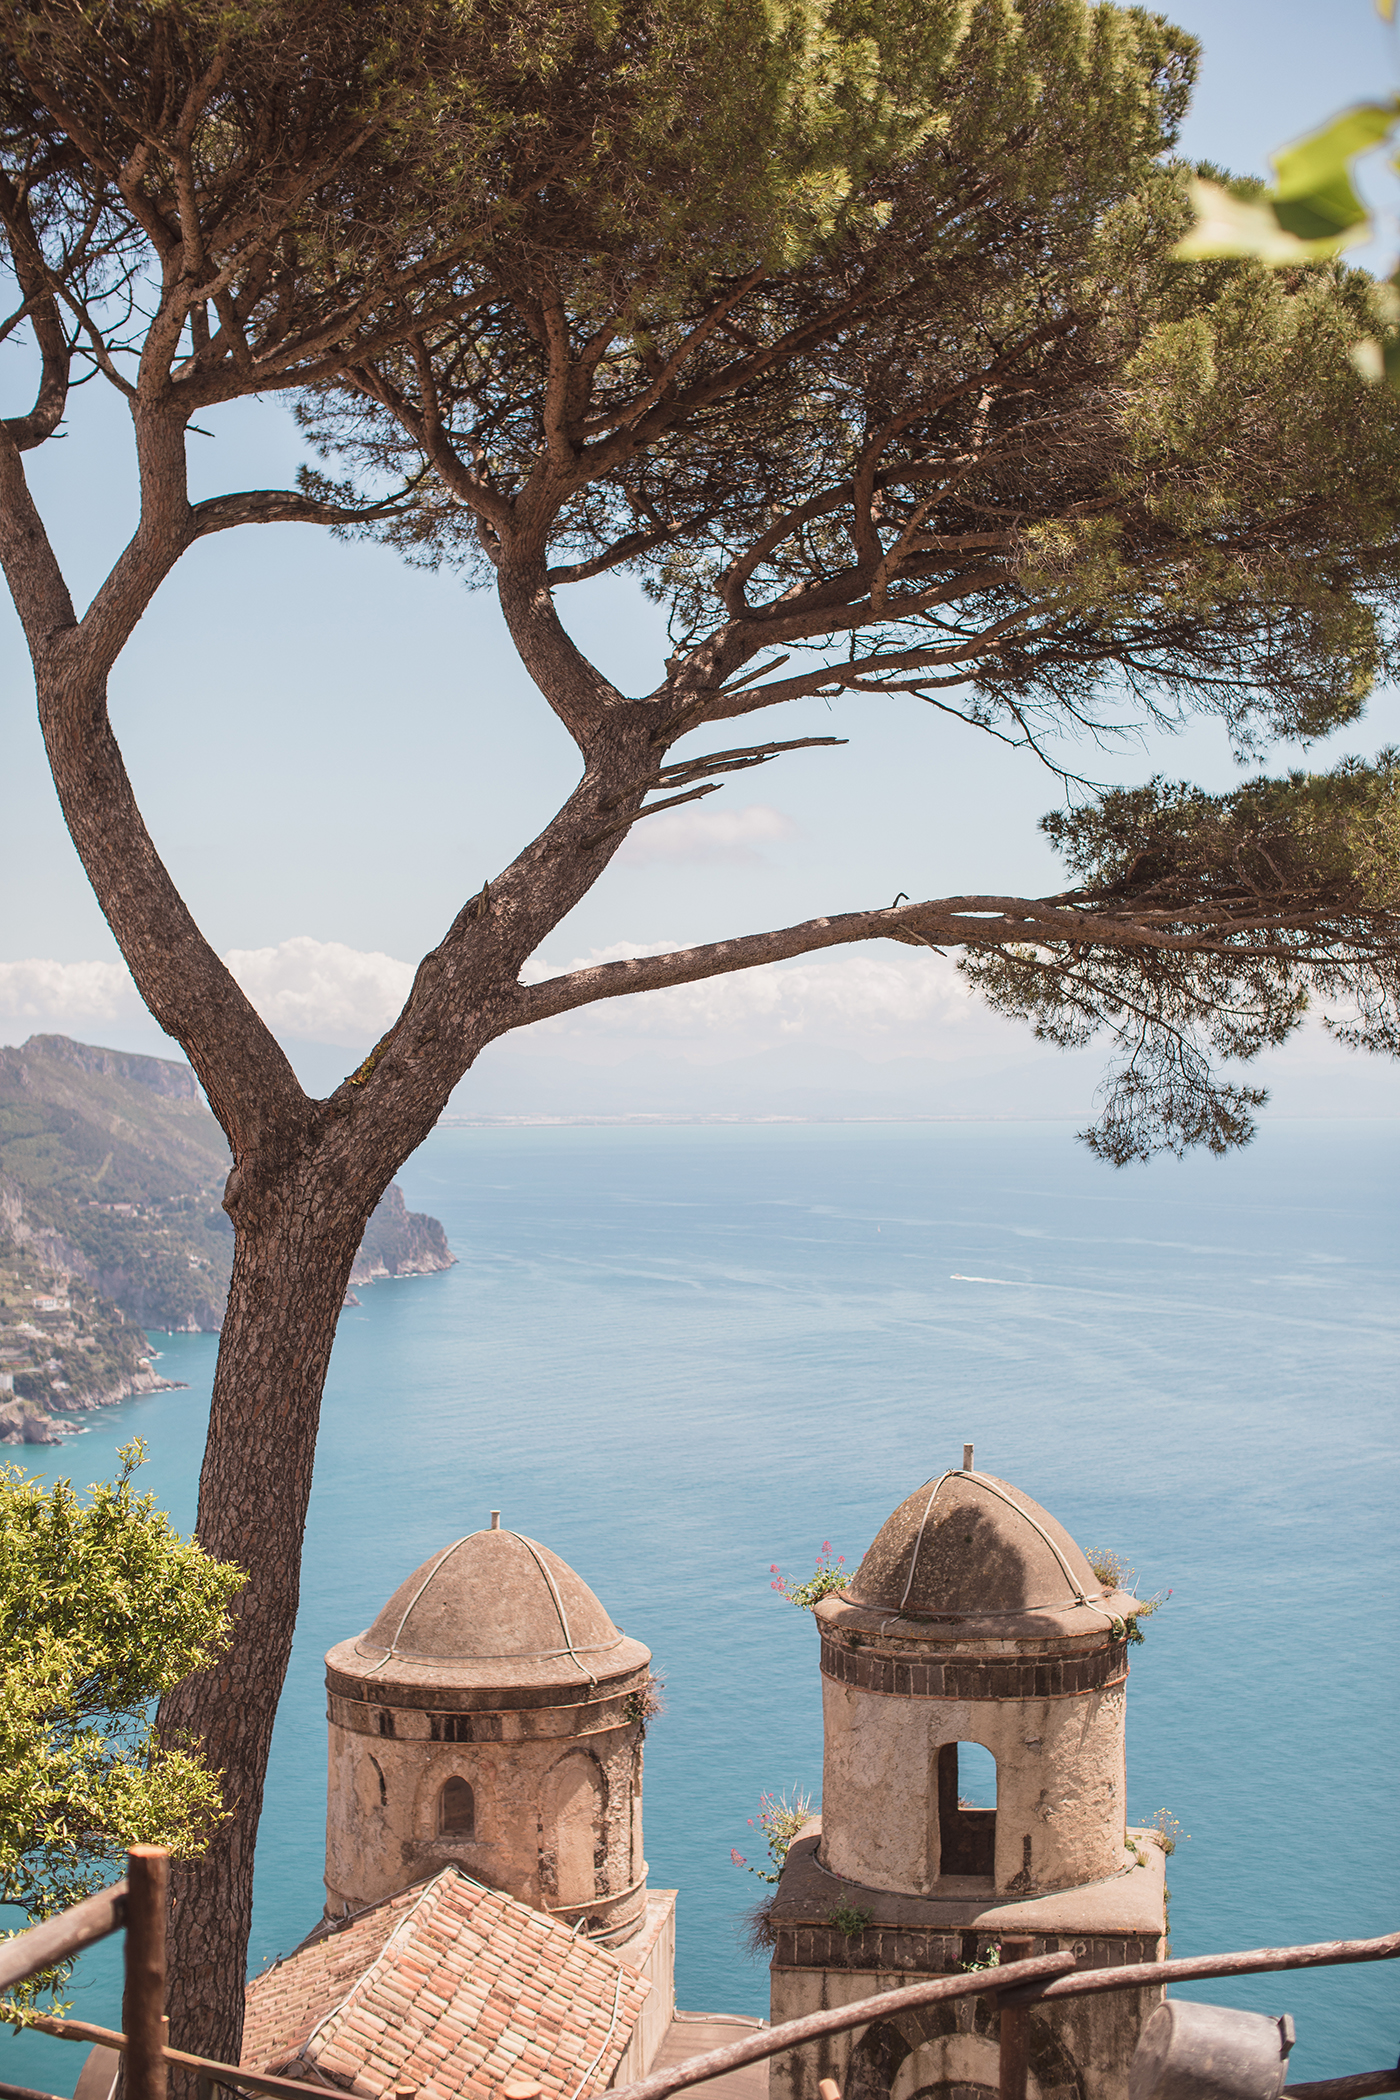 Day Trip Ideas Alogn the Amalfi Coast